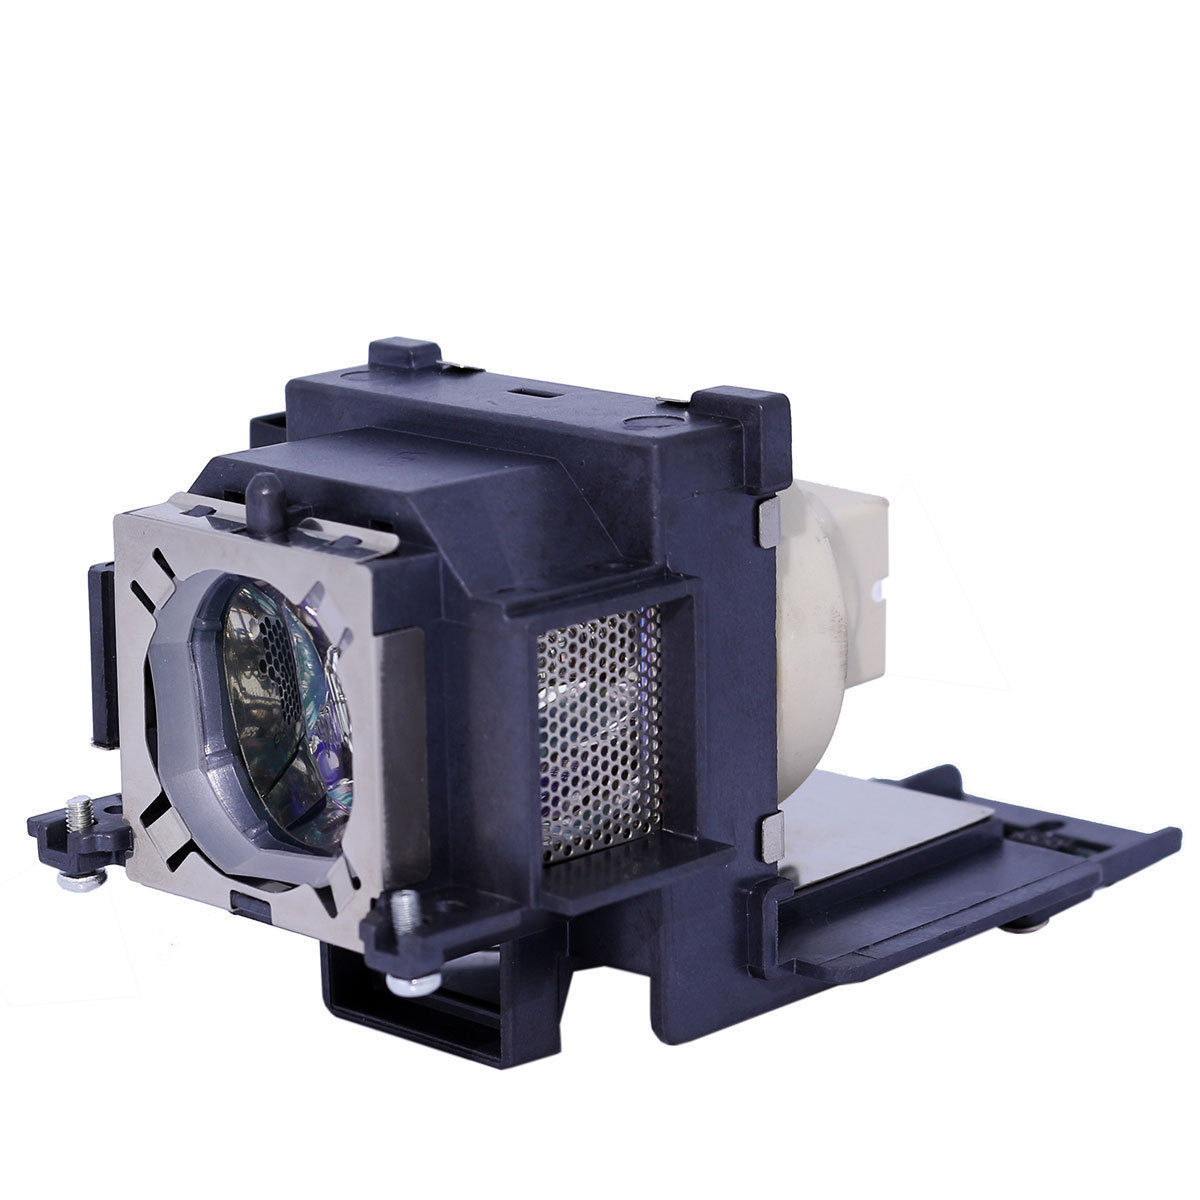 Projector Lamp Bulb ET-LAV100 for Panasonic PT-VX400 PT-VX400E PT-VX400EA PT-VW330 PT-VX400NTE PT-VX400NT PT-VX41 with housing et lab80 etlab80 lab80 for panasonic pt lb78 pt lb80ea pt lb80nt pt lb80ntea pt lw80nt pt lb90 projector lamp bulb with housing